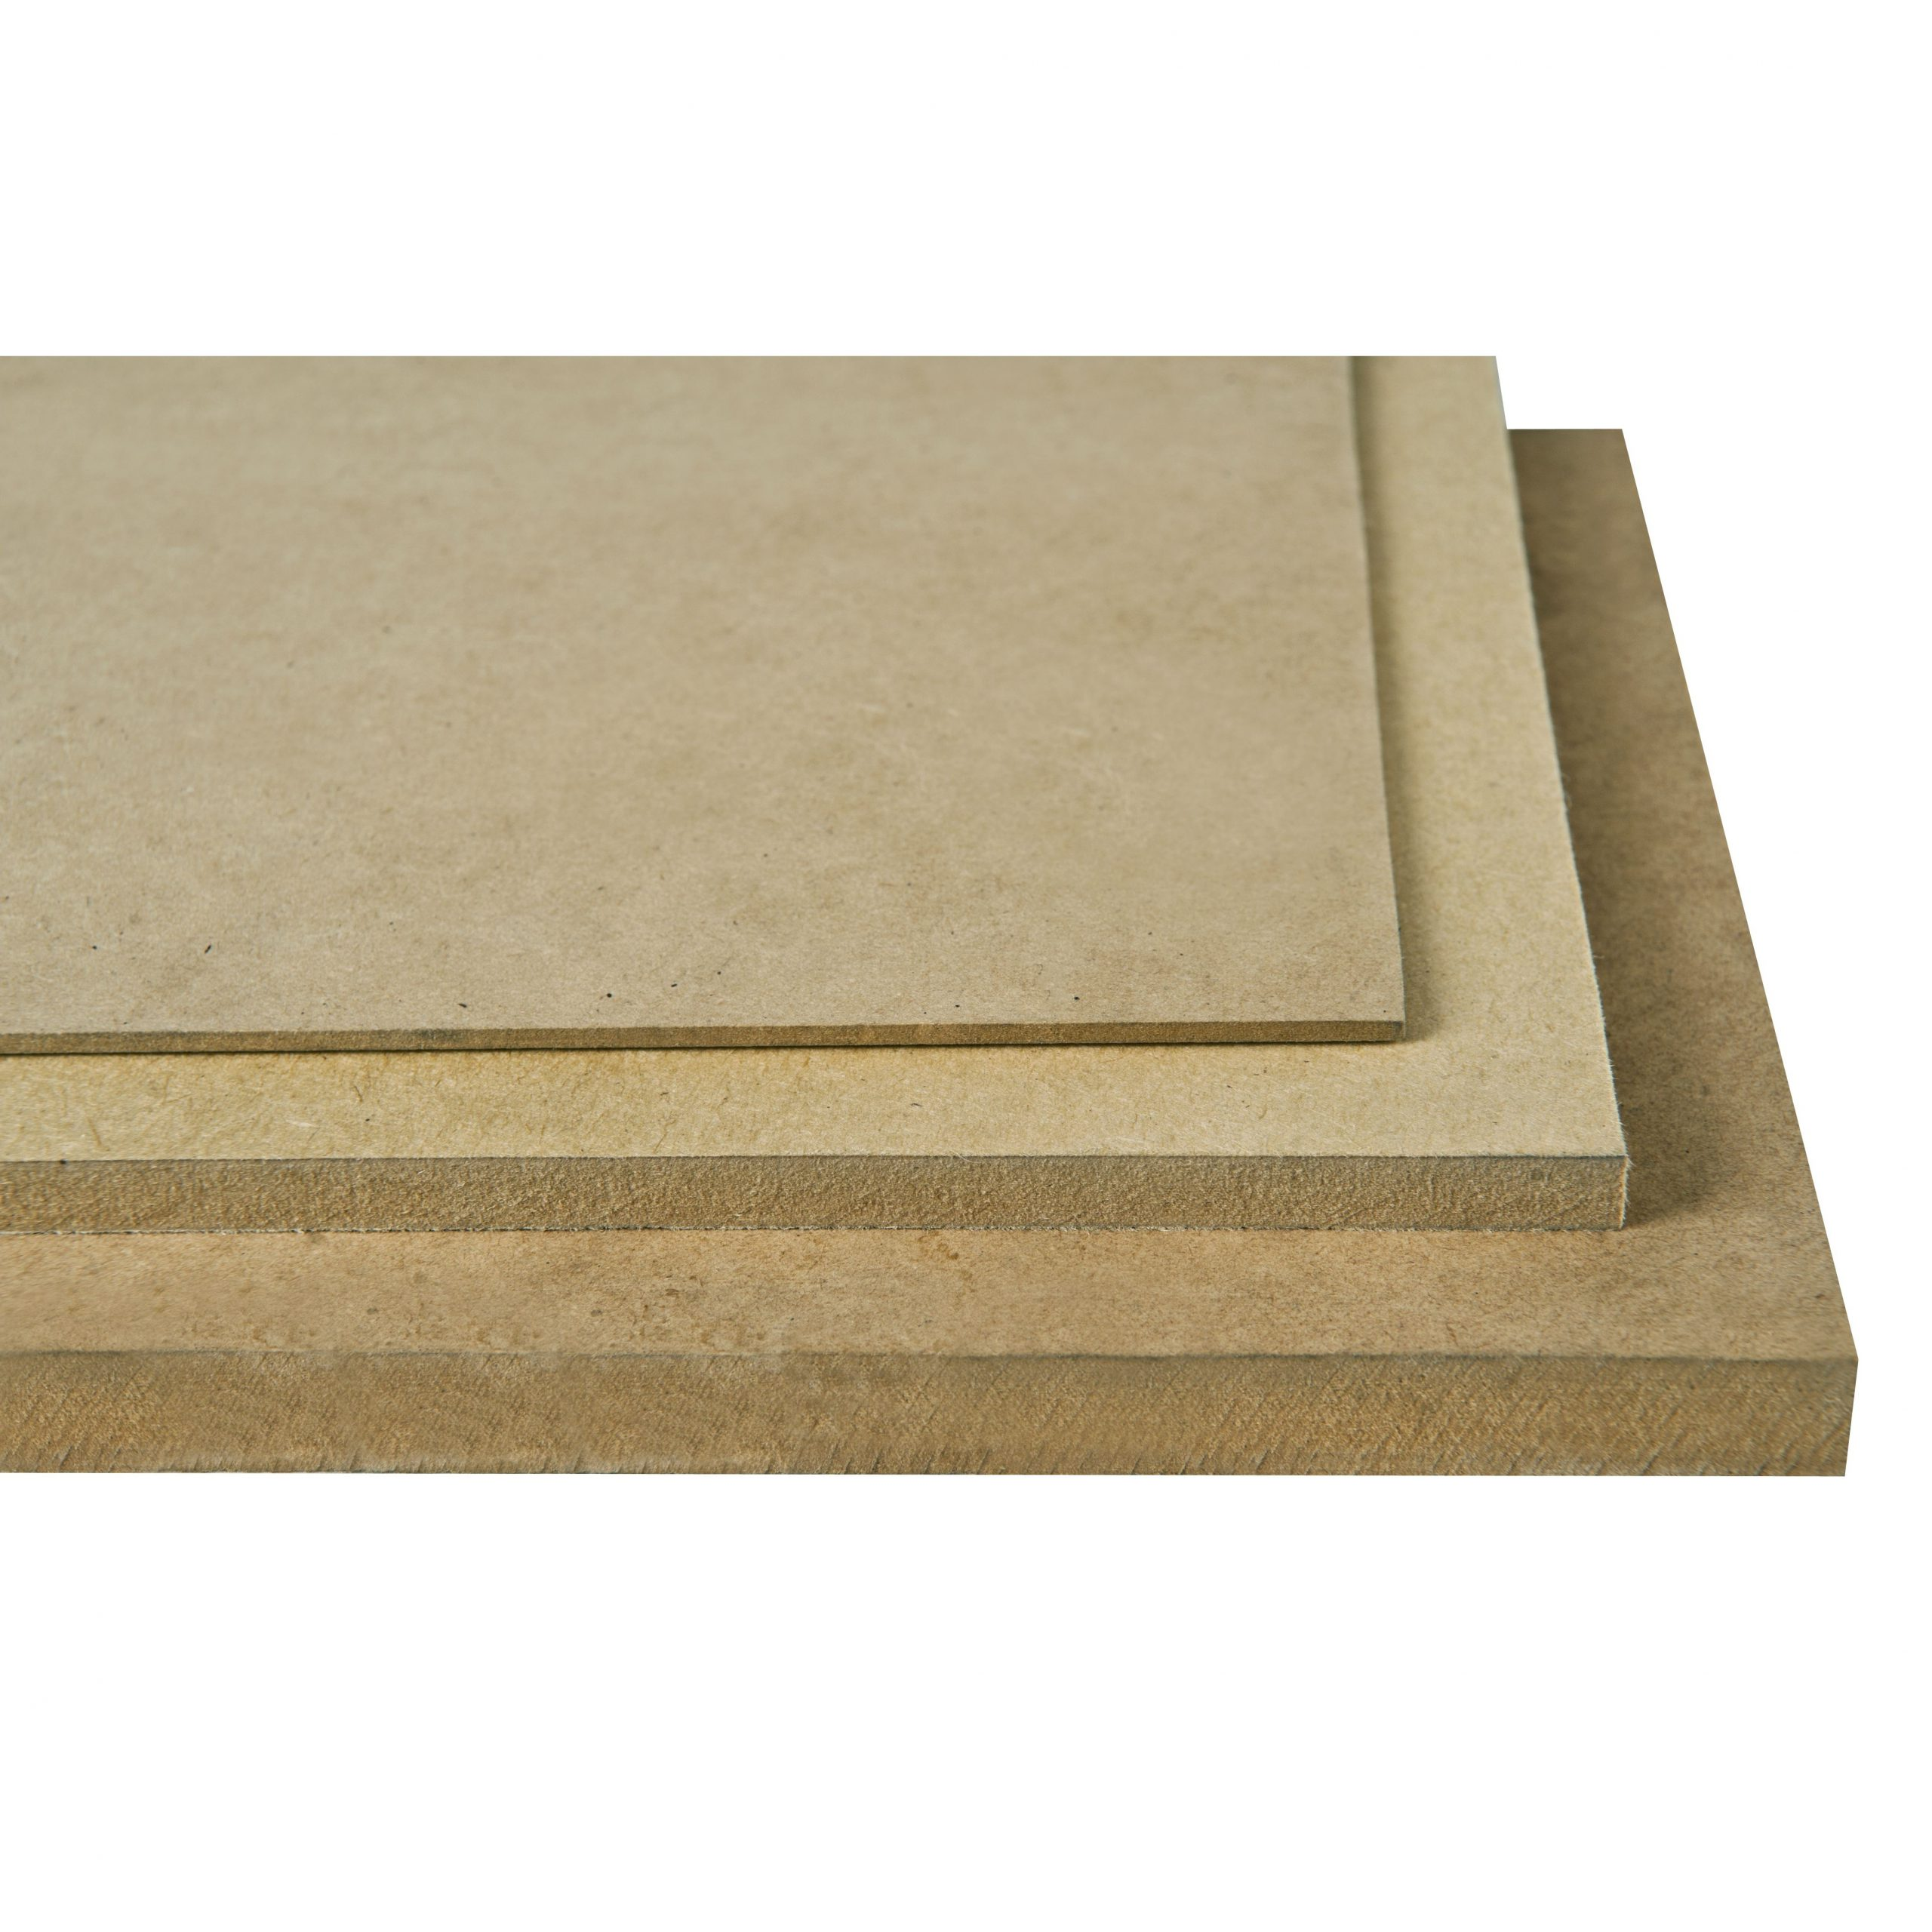 3.0mm MDF Protection Grade Sheet